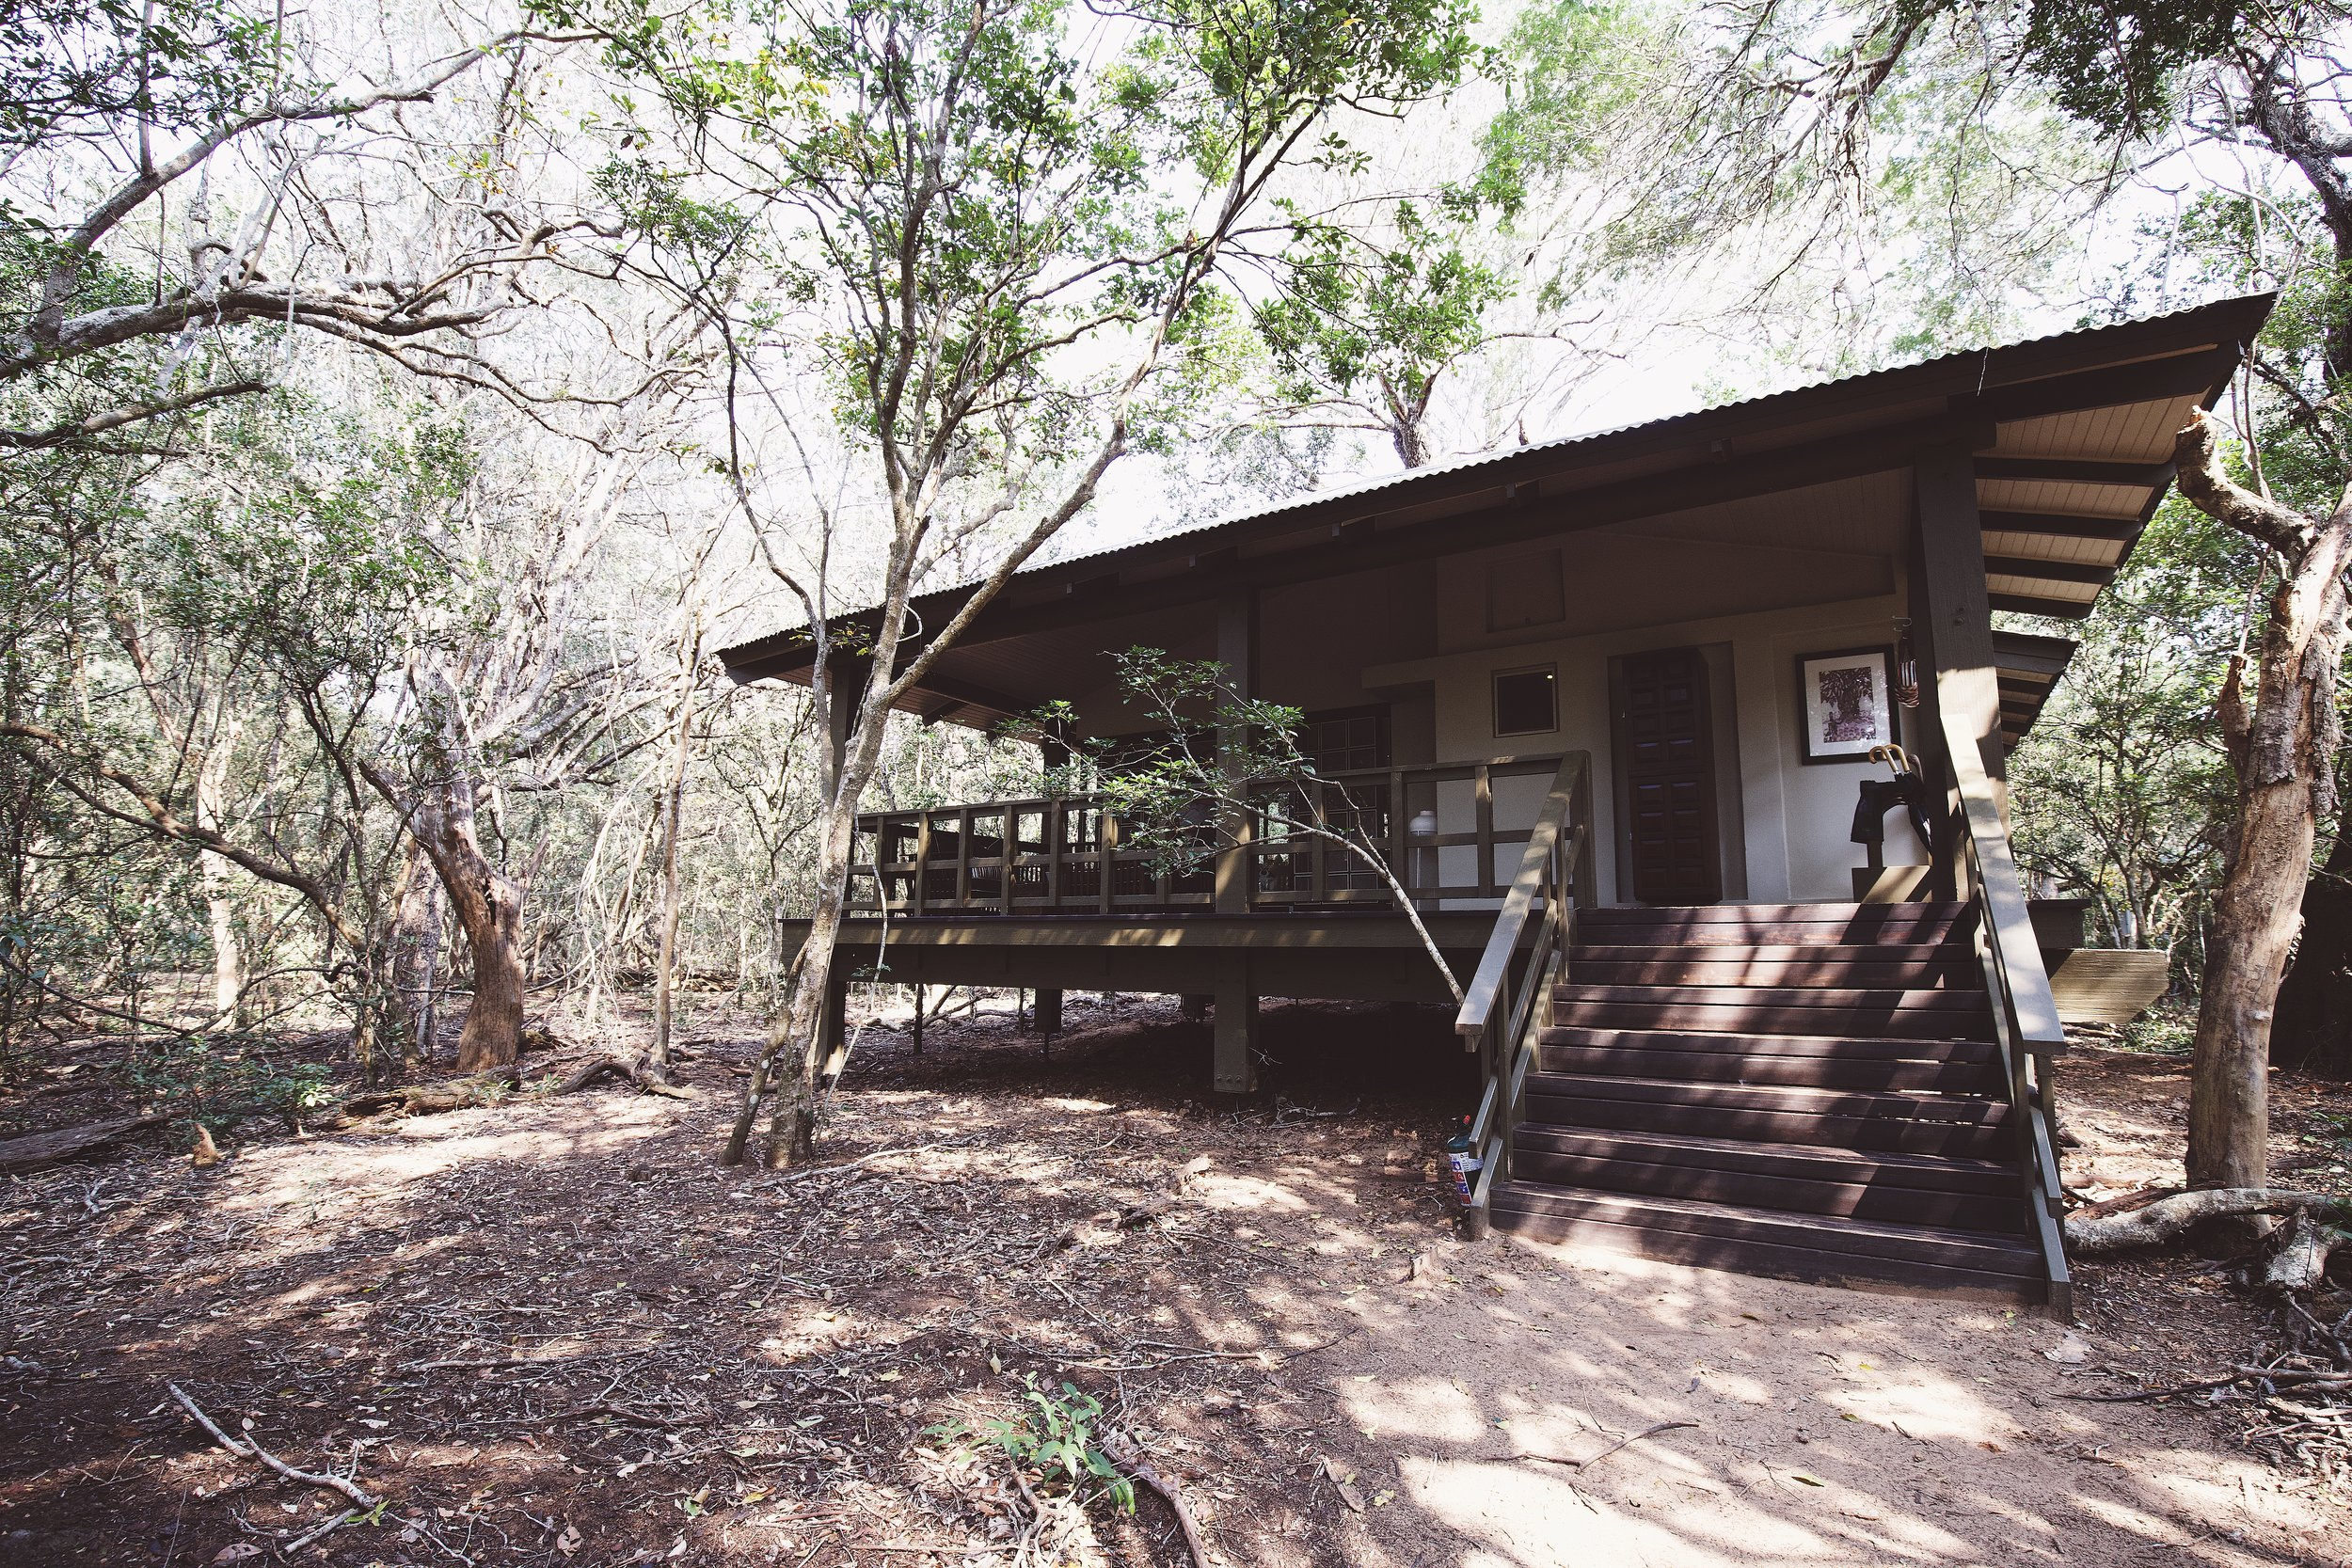 IMG_8690_8.23.18_our forest lodge exterior_x.jpg